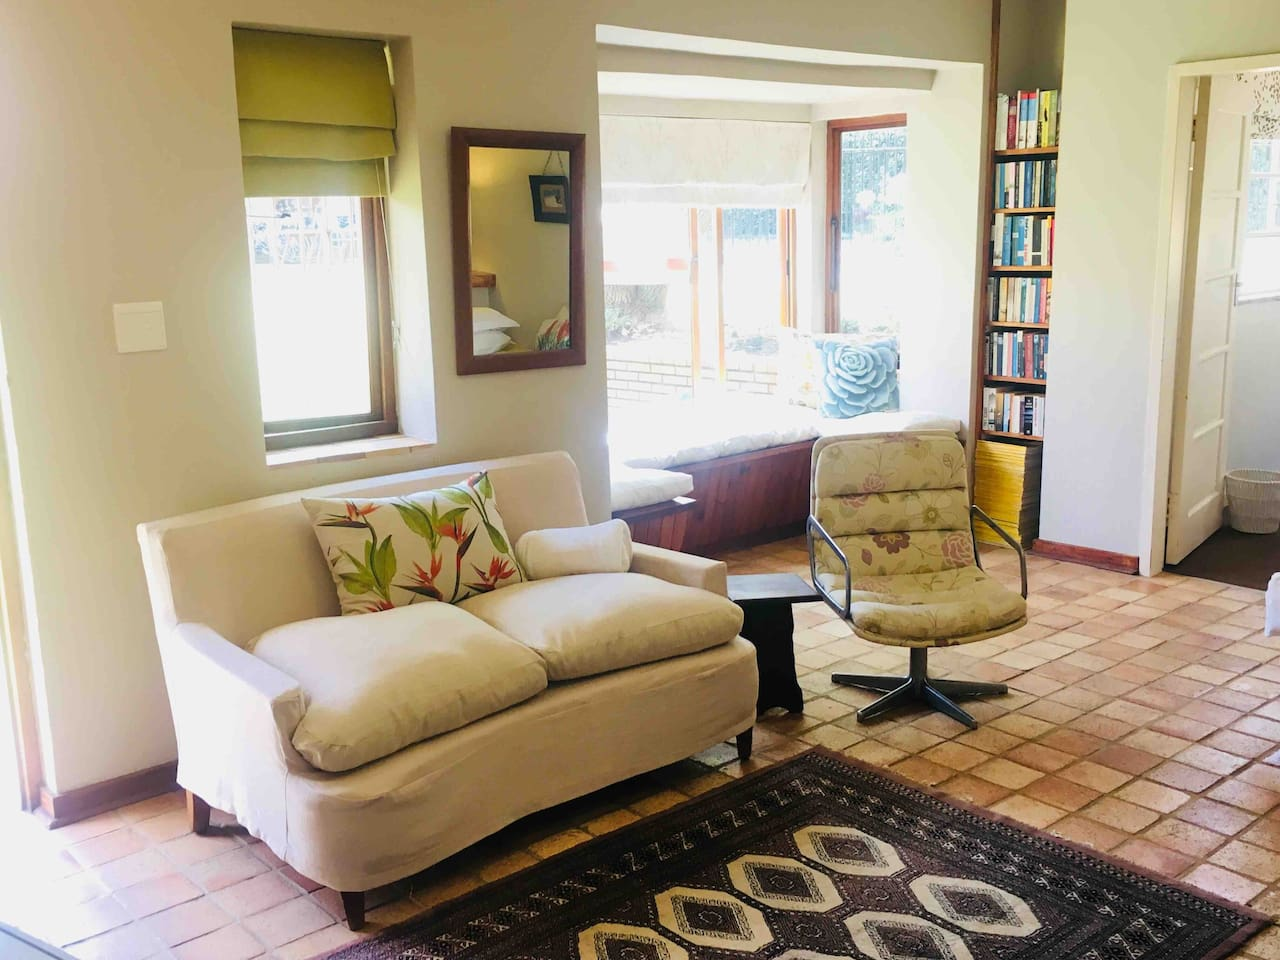 Lounge and reading nook with view of the garden